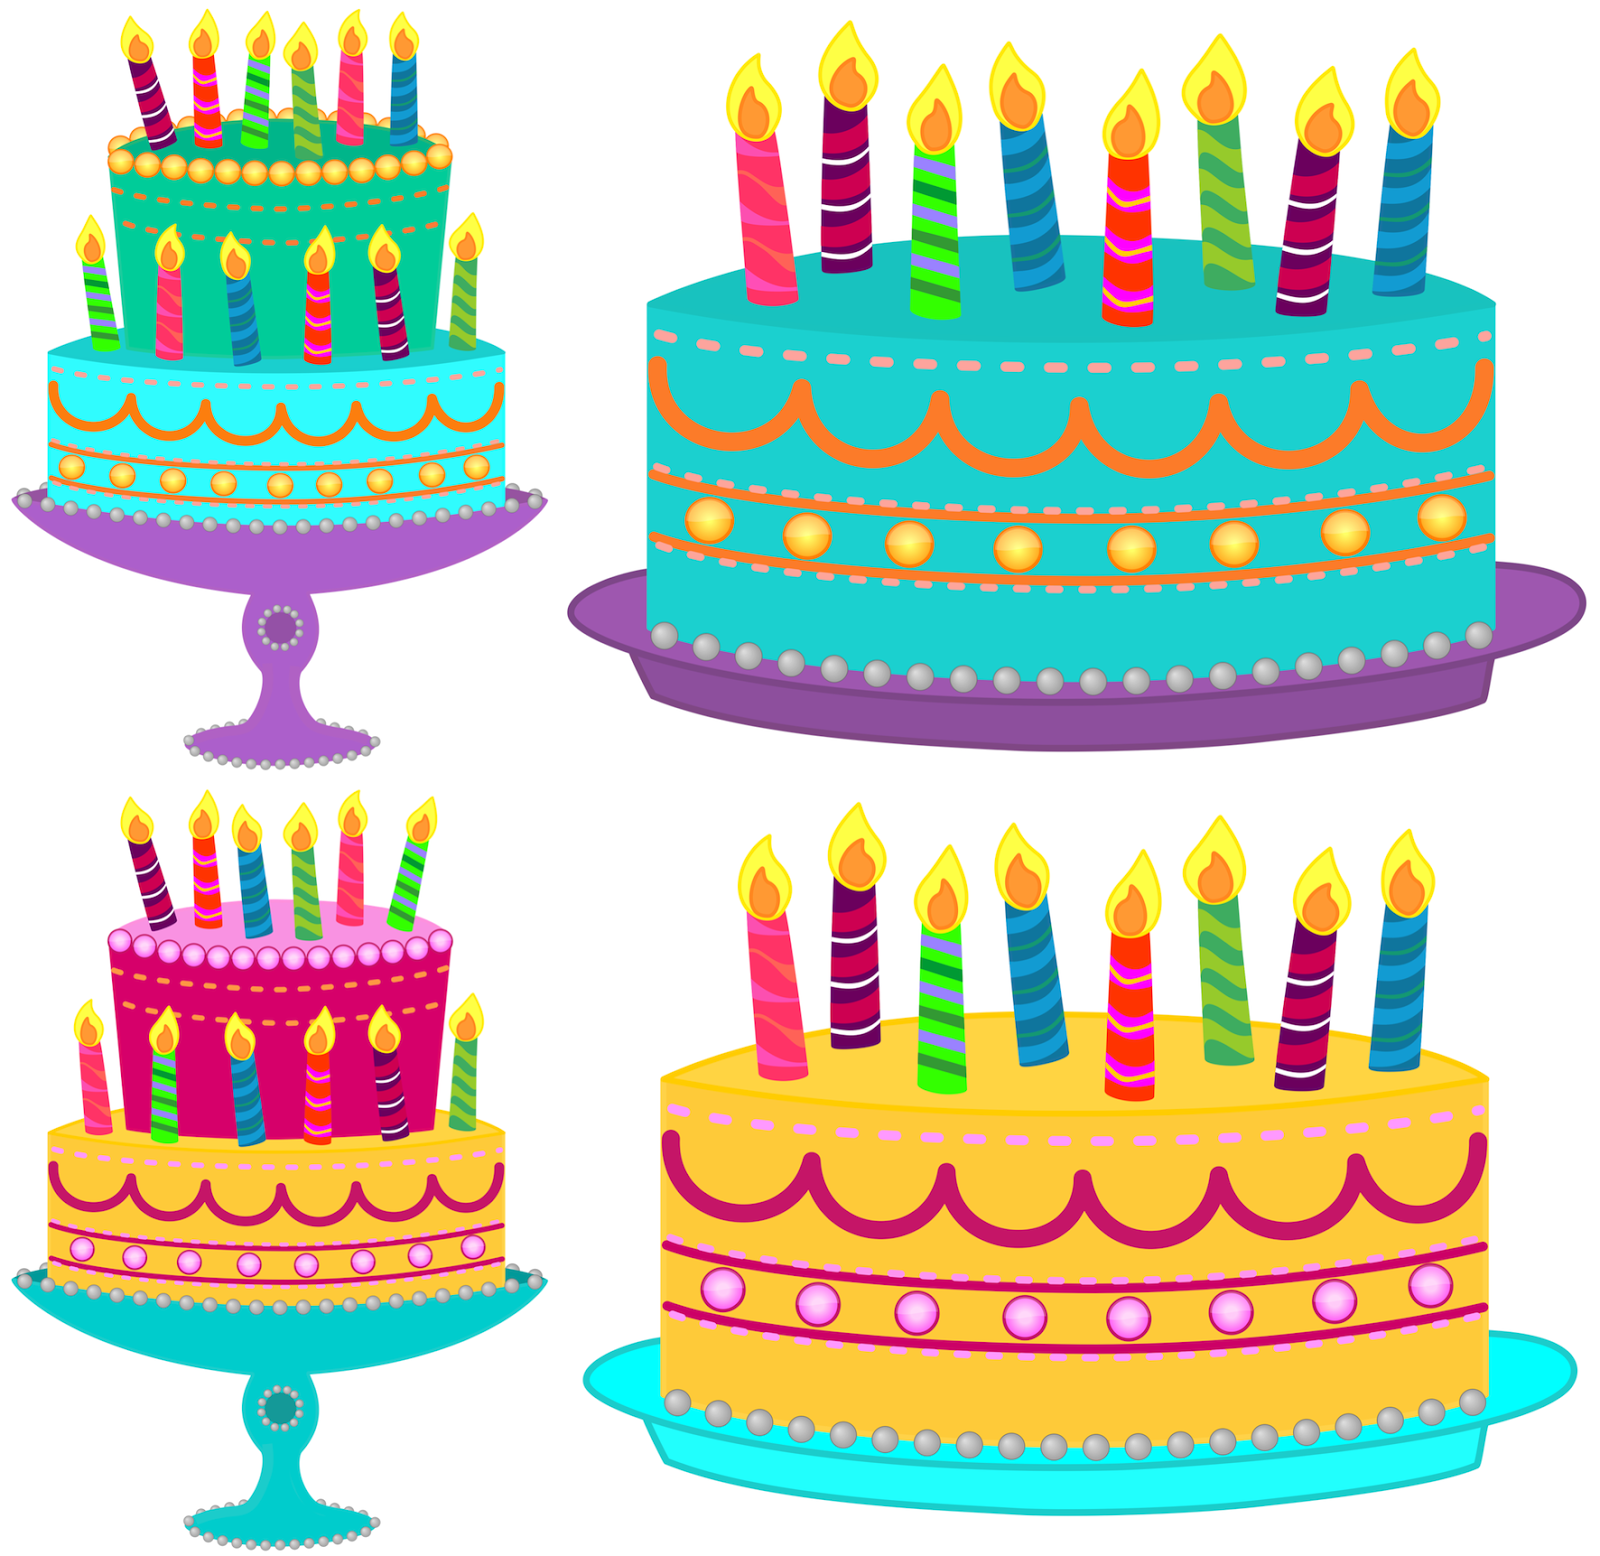 July blue with no. Candles clipart birthday cake